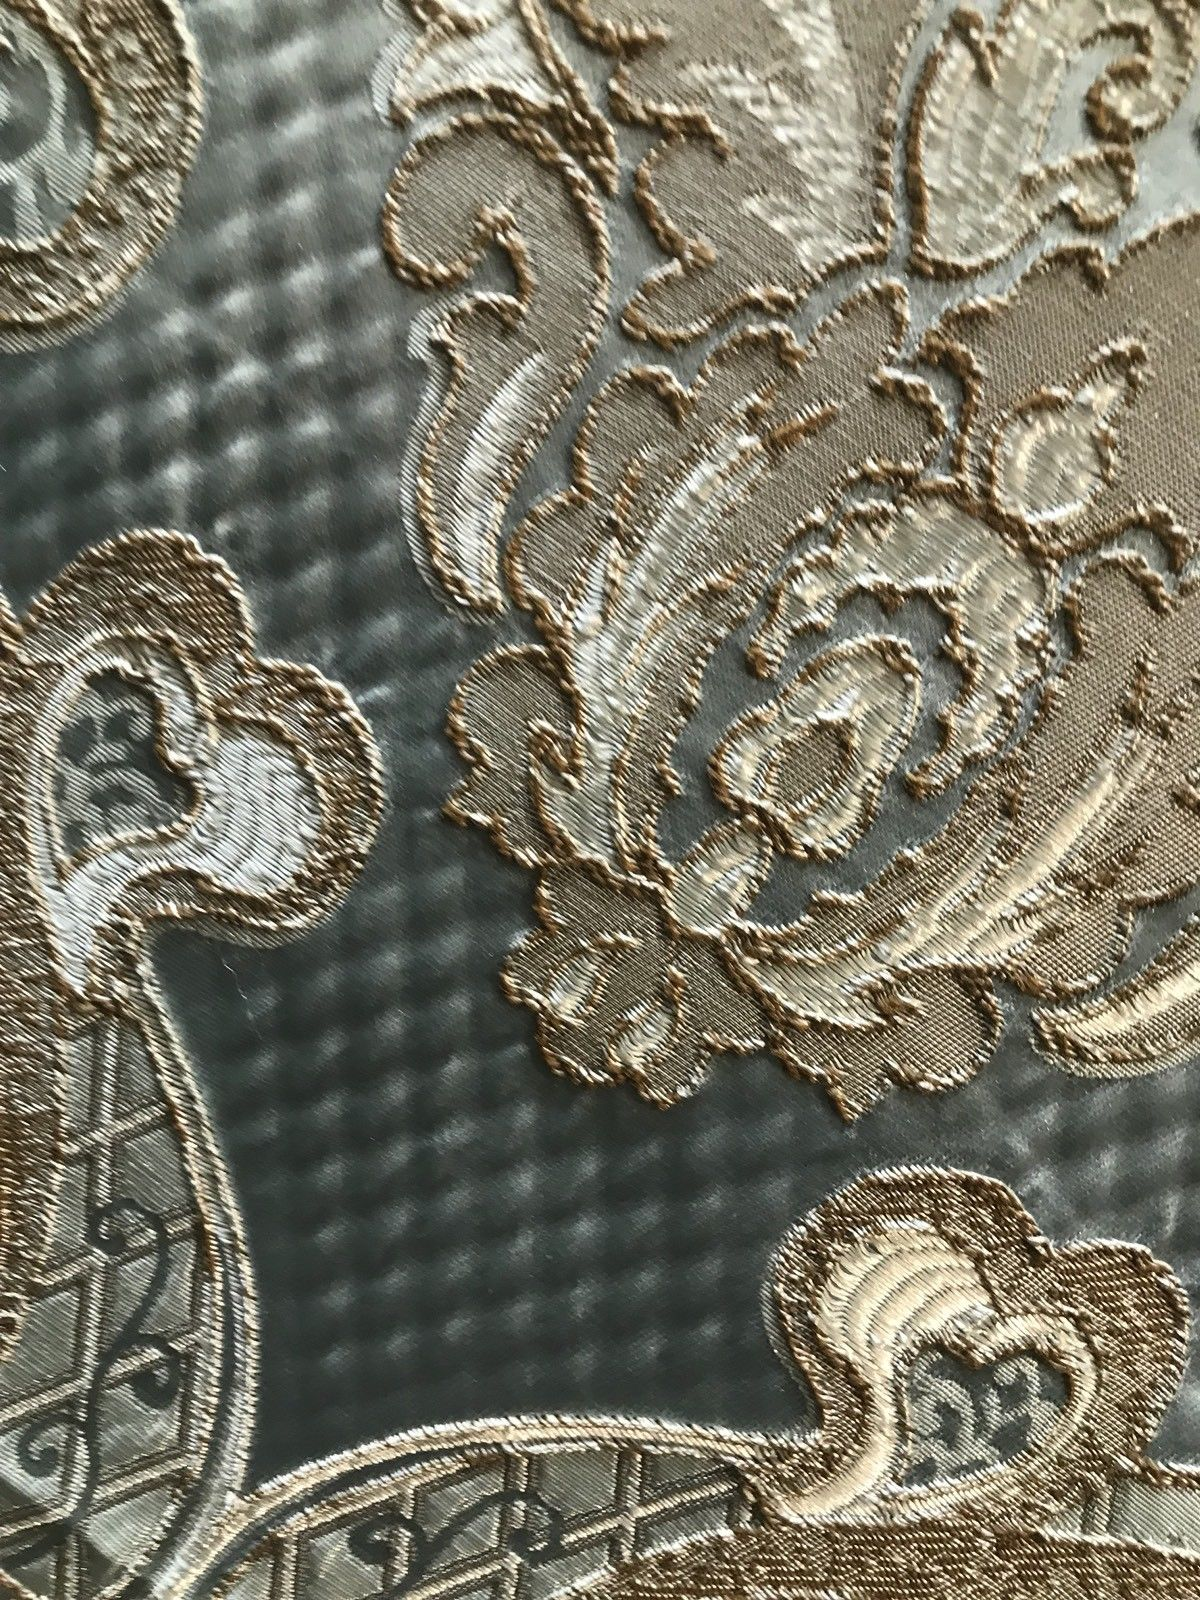 SWATCH Antique Inspired Eggshell Silver Blue Satin Brocade Upholstery Fabric - Fancy Styles Fabric Boutique